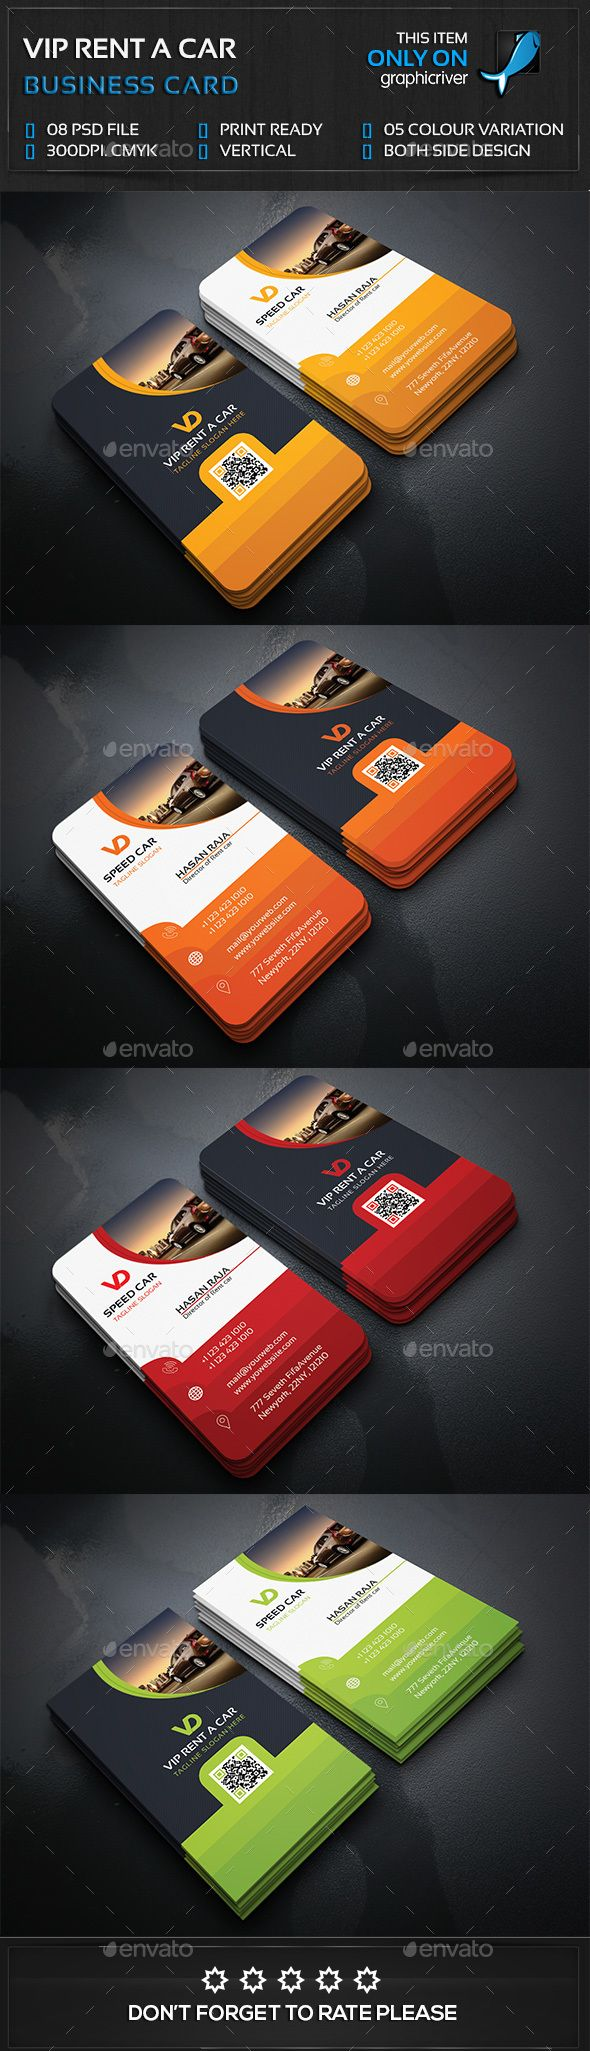 173 best design ideas business cards images on pinterest business rent a car business card business cards print templates reheart Images